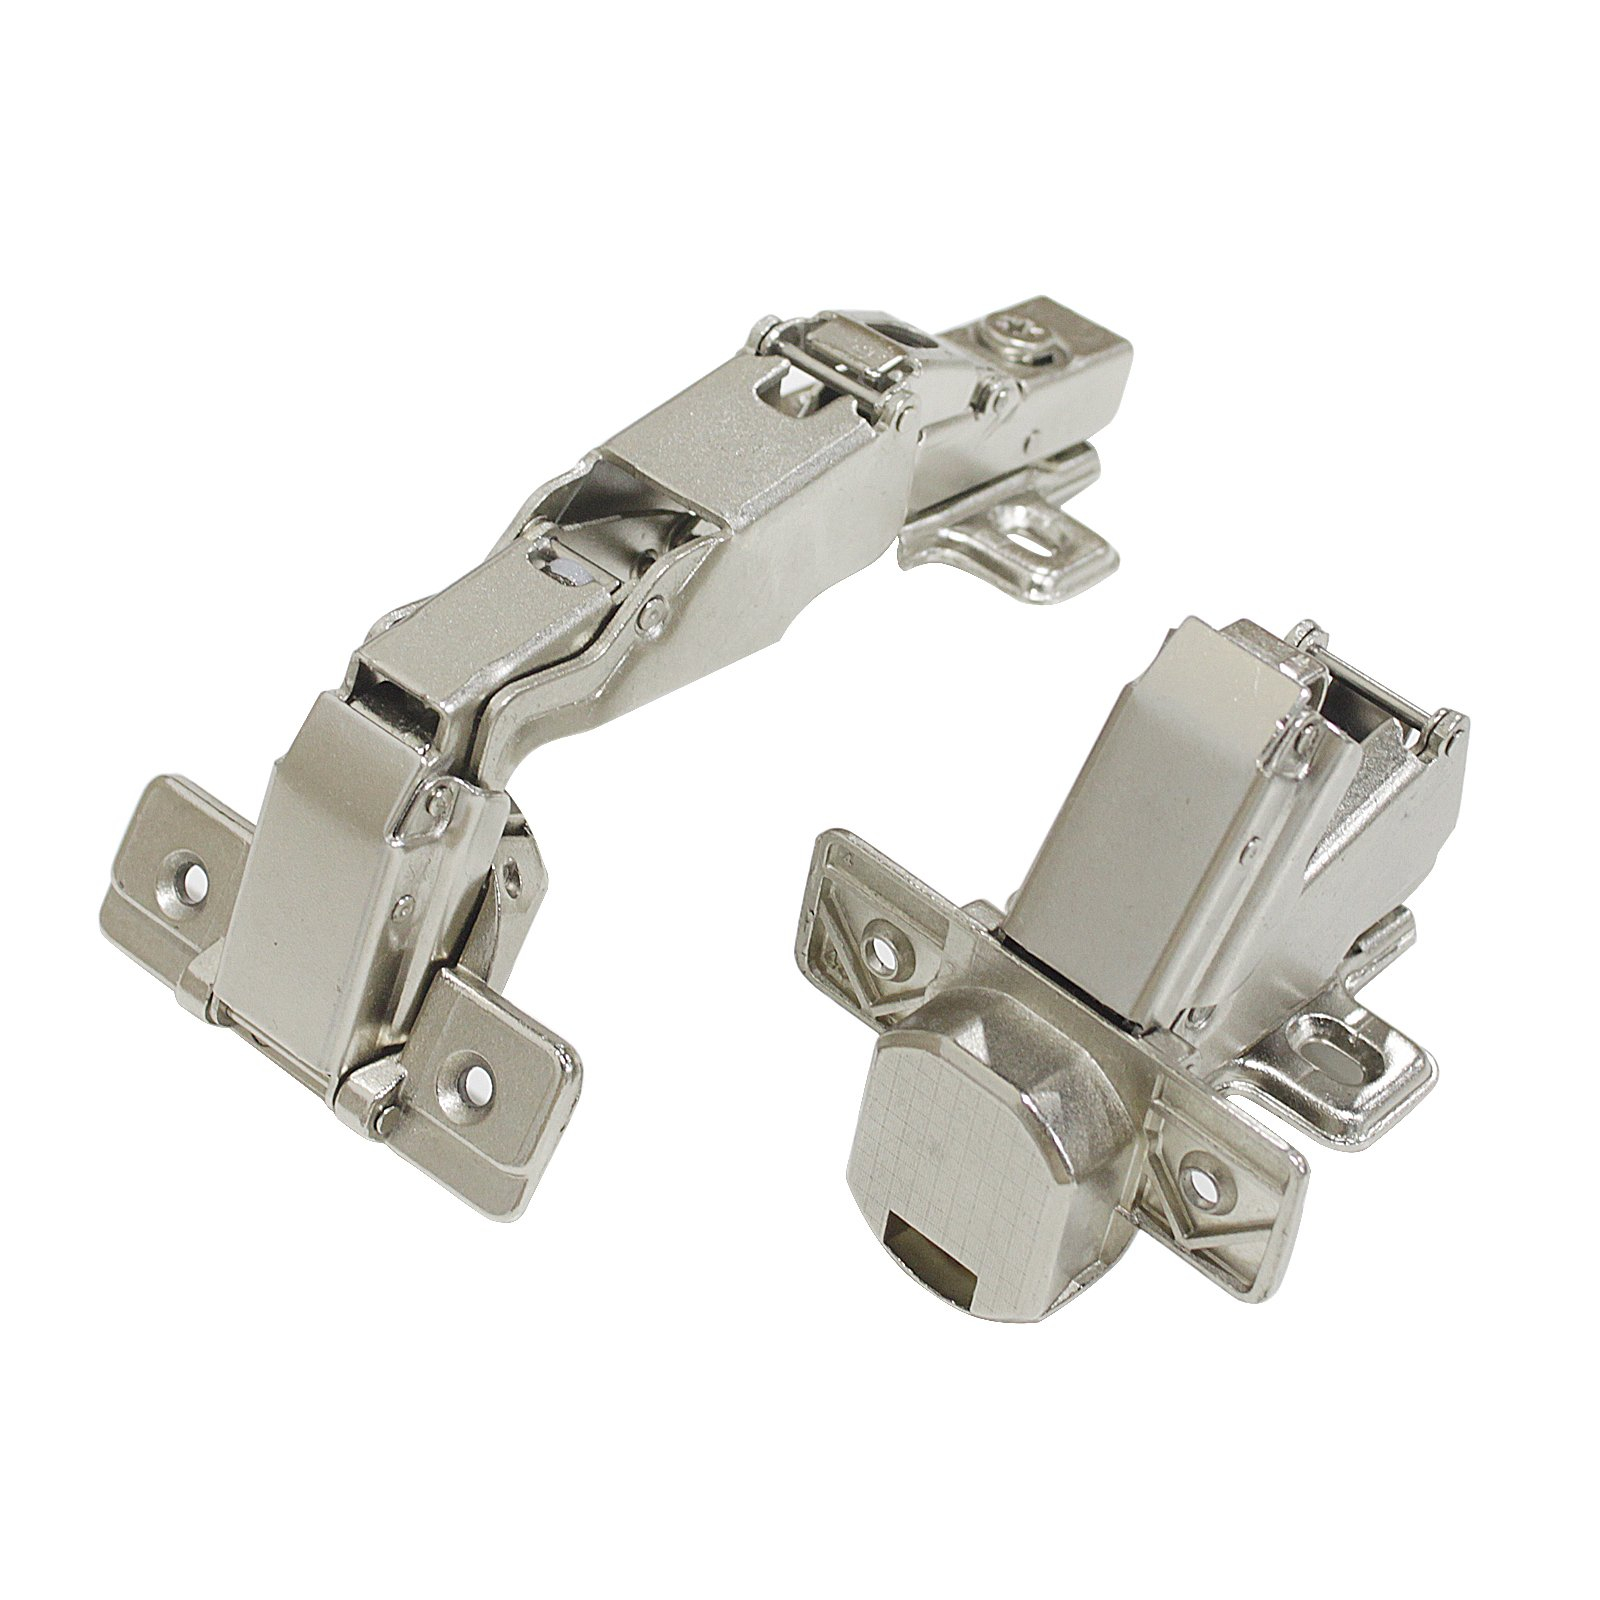 Full Overlay Frameless Cabinet Door Hinges, 165 Degree Soft Closing Nickel Plating Durable European Style Concealed Hinges 10 Pair by Knobonly (Image #7)